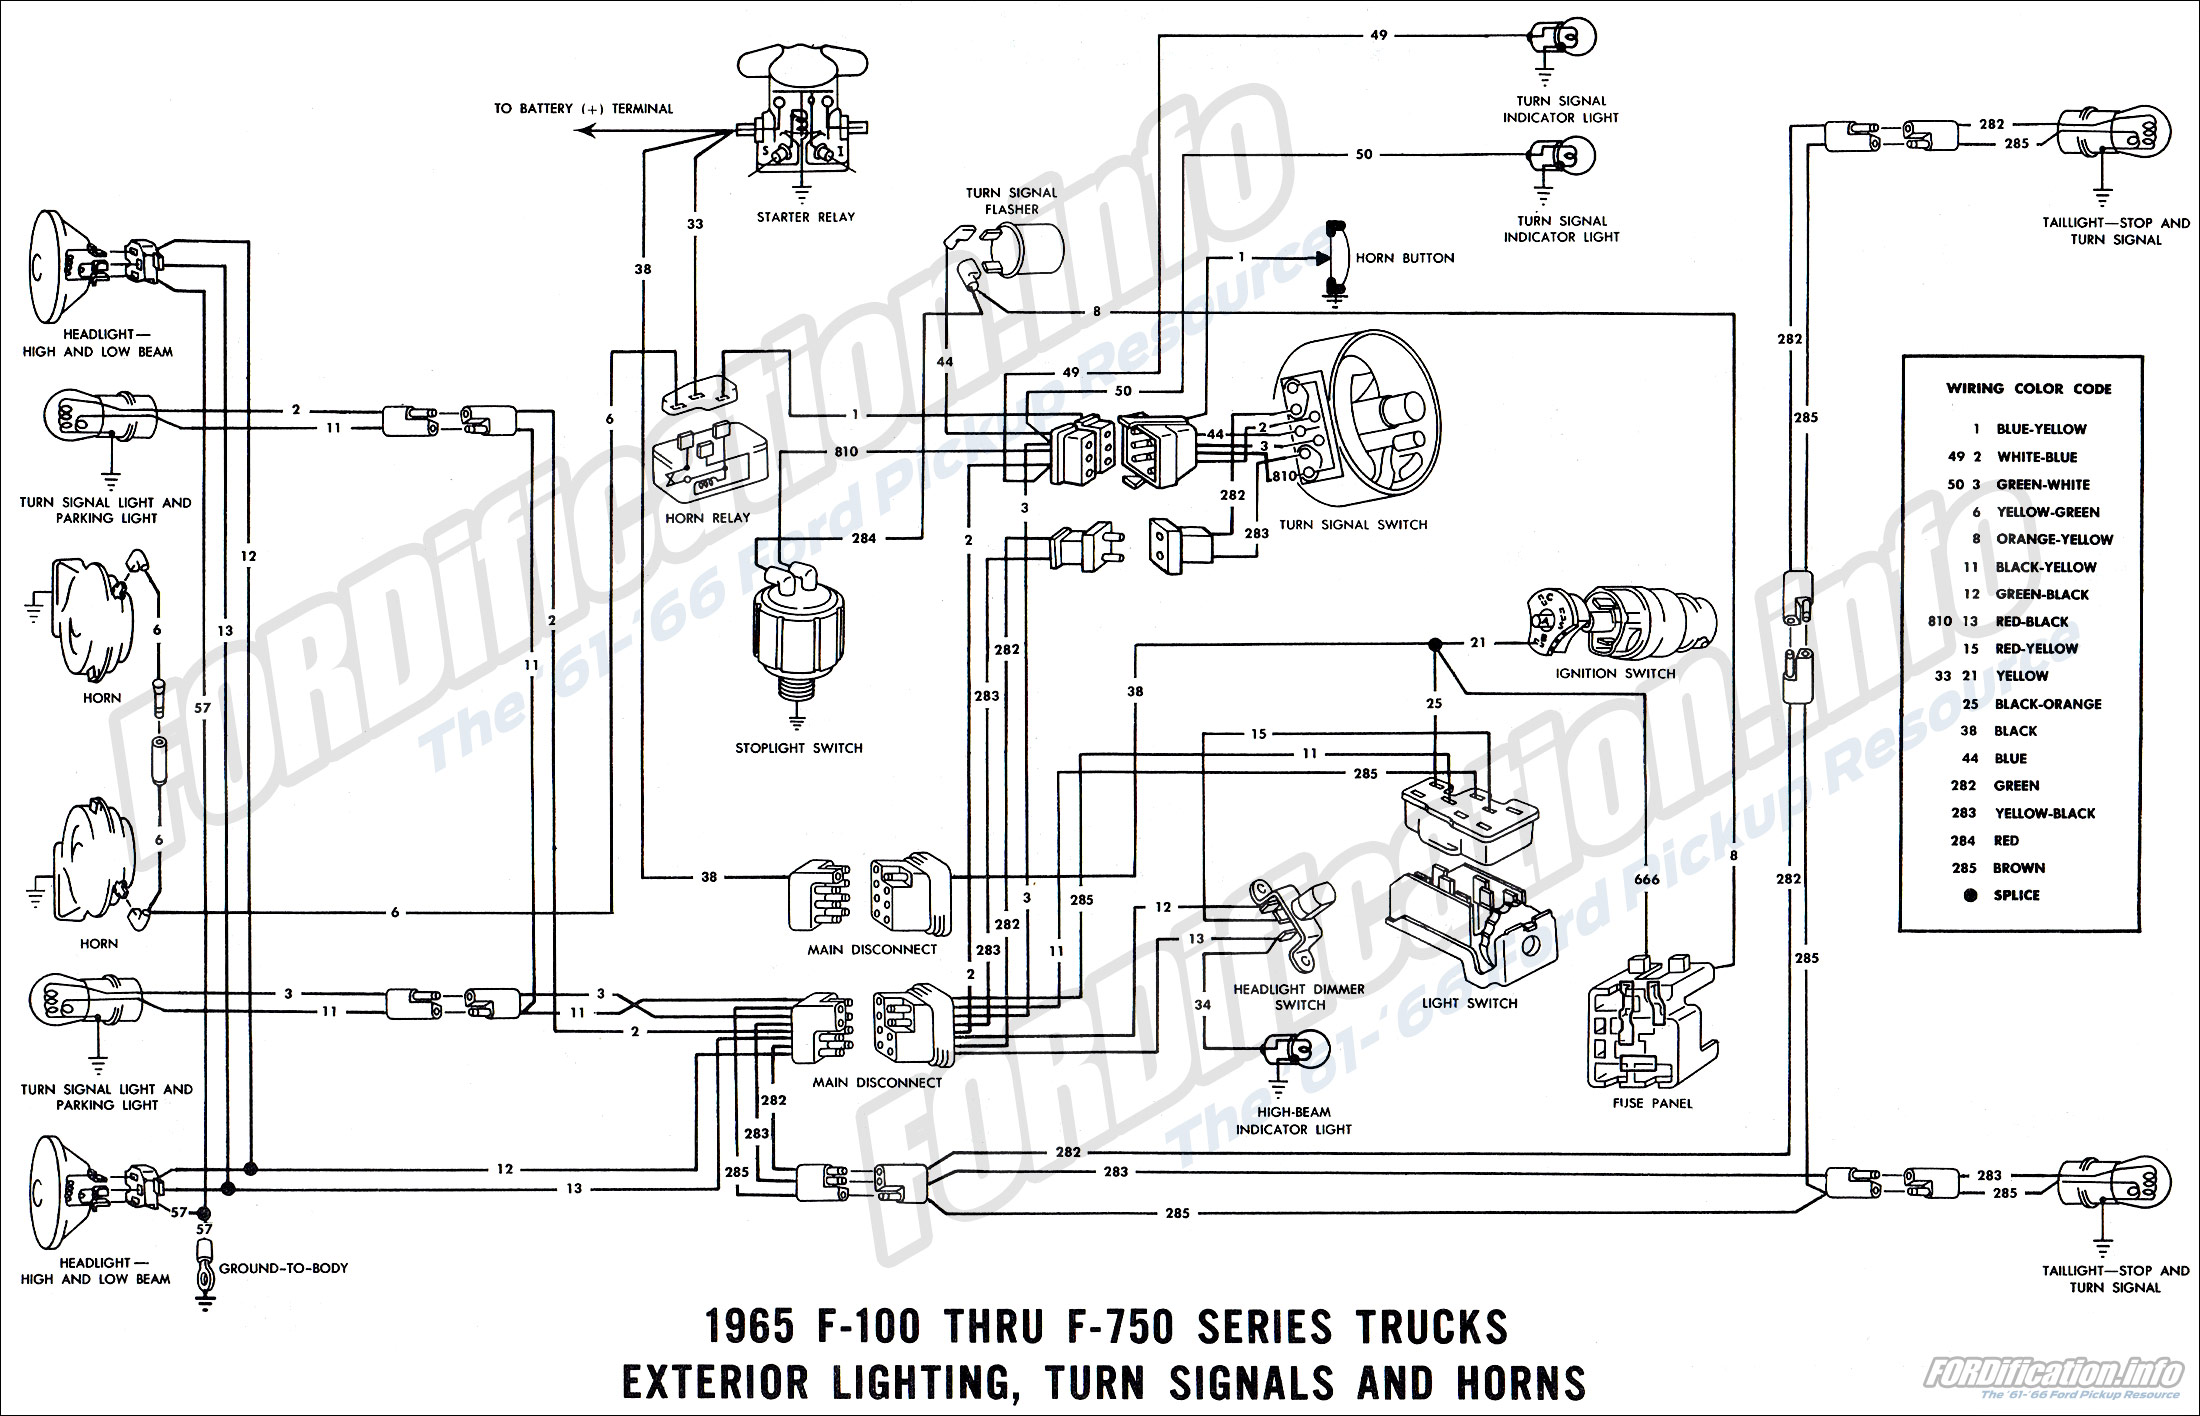 1960 ford wiring diagram wiring diagram today 1978 Ford Truck Wiring Diagram 1960 f100 wiring diagram wiring diagram forward 1960 ford f250 wiring diagram 1960 ford f250 wiring